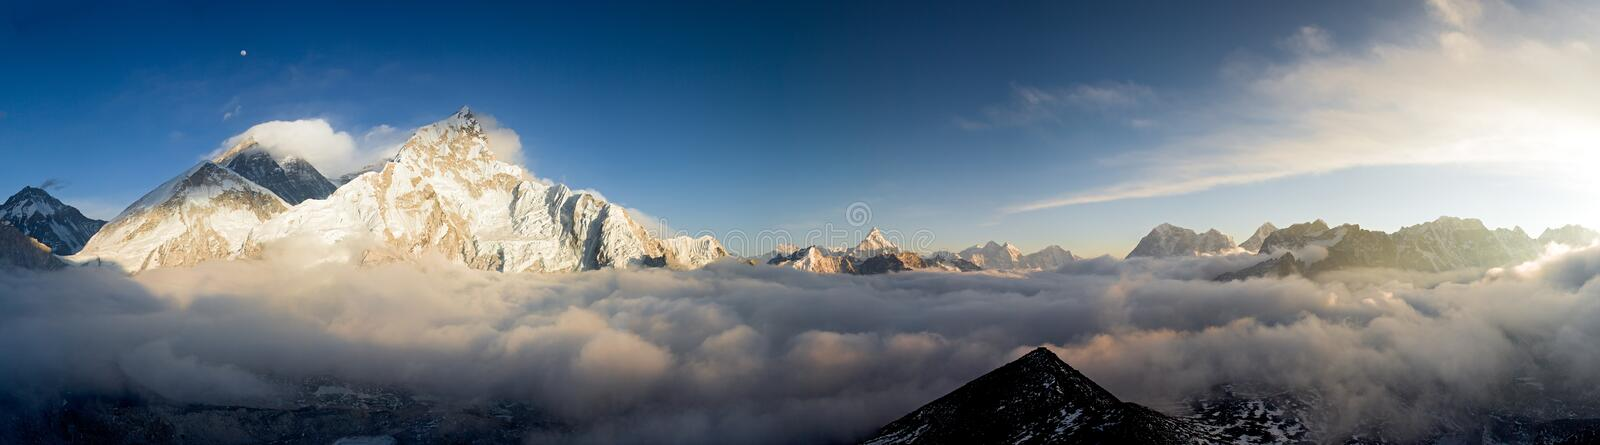 A Pamoramic View of Everest and Nuptse stock images